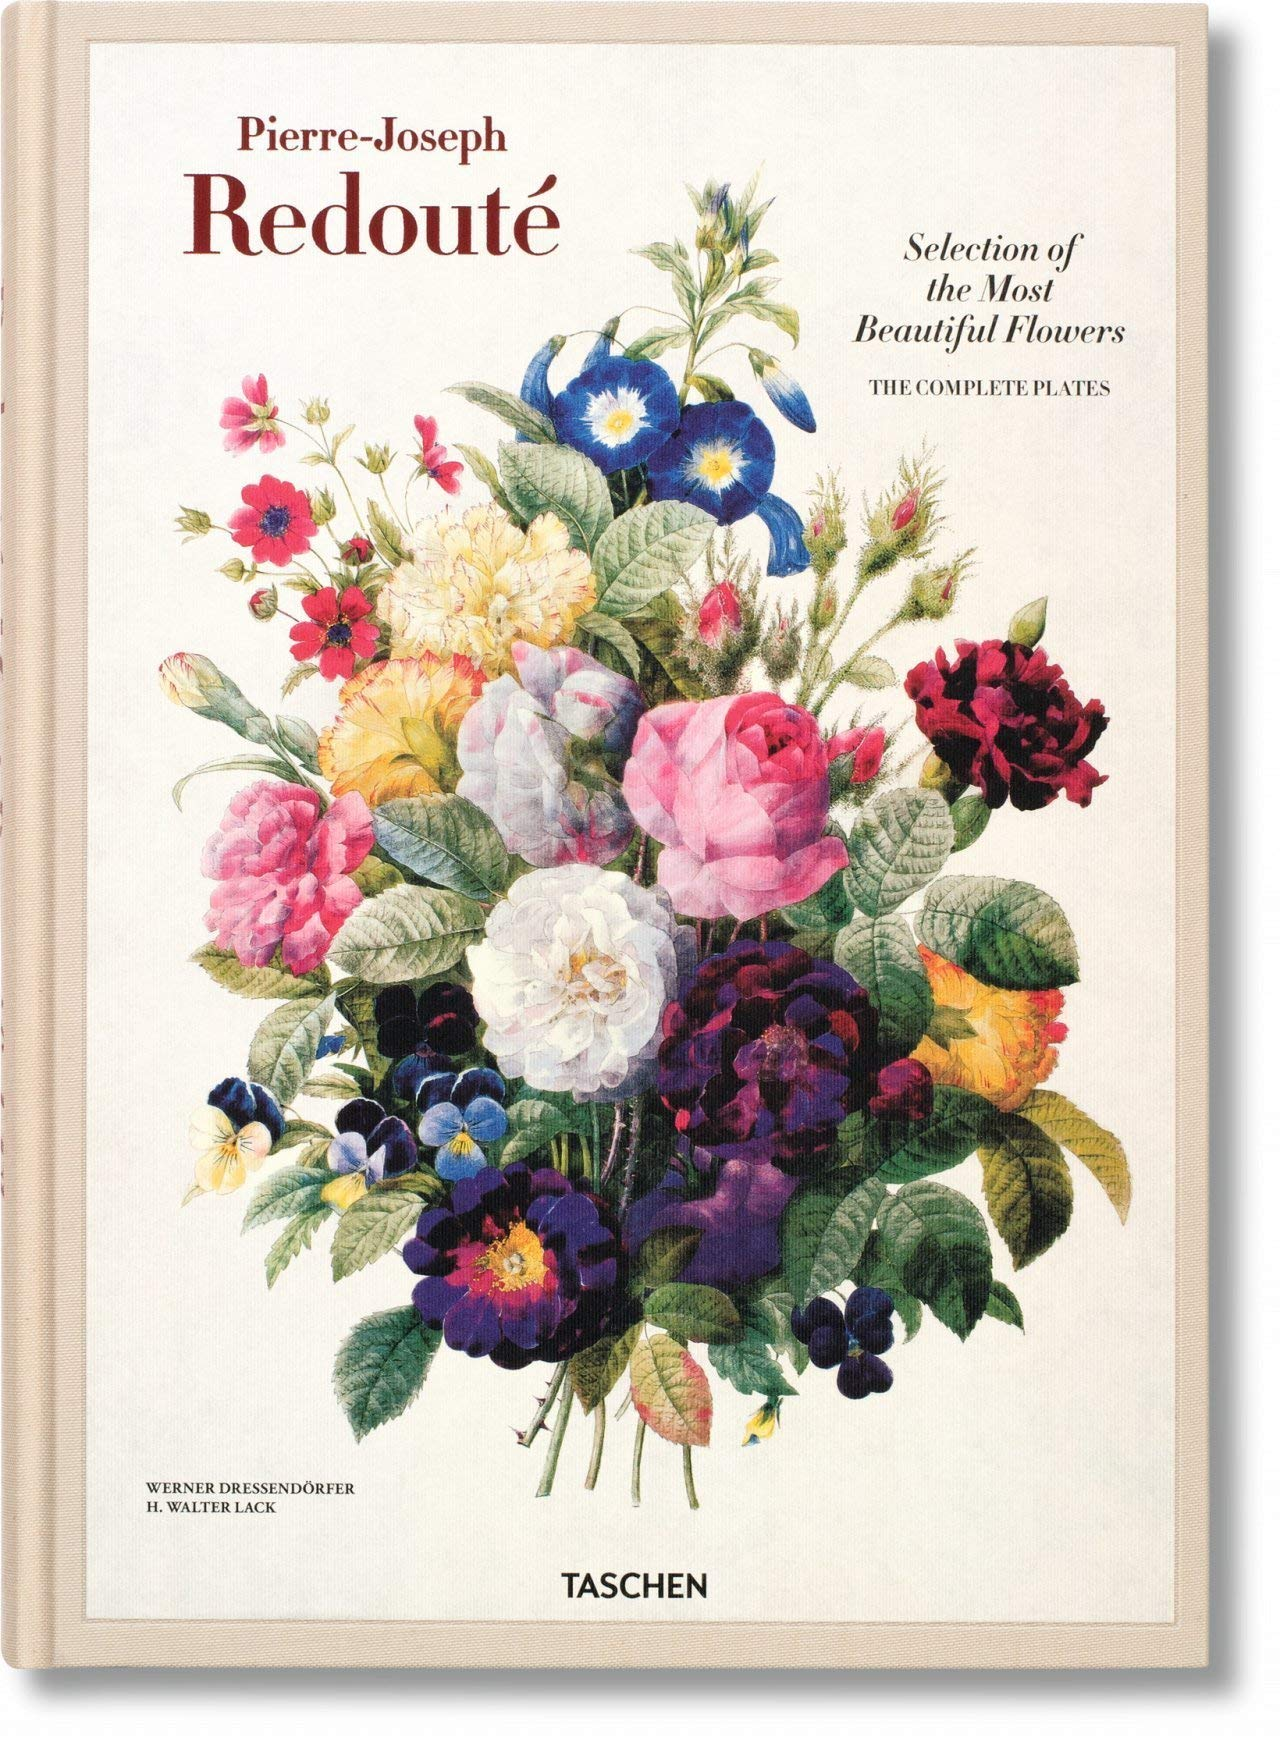 Redoute Selection Of The Most Beautiful Flowers Dressendorfer Werner Lack H Walter Redoute Pierre Joseph 9783836505154 Amazon Com Books,Black King Size Bedroom Furniture Sets